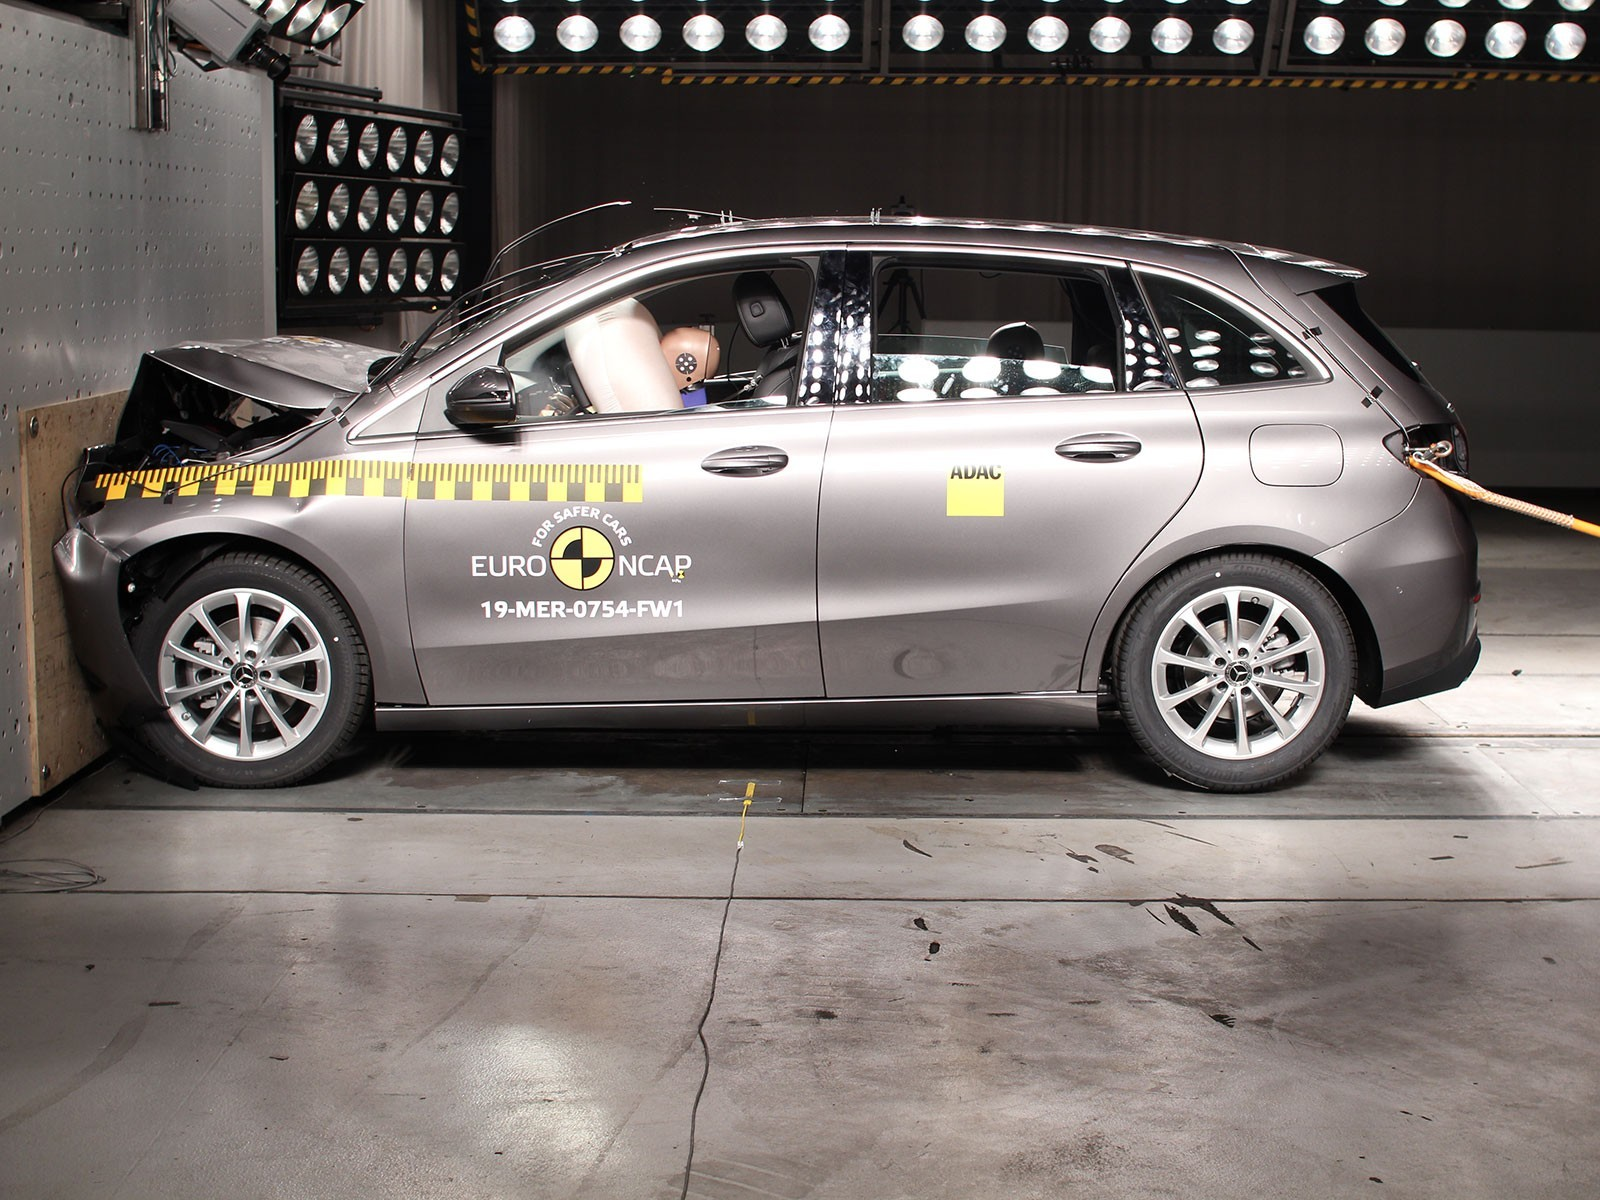 Oeamtc crashtest sechs autos safety pack bringt sicherheits plus 001